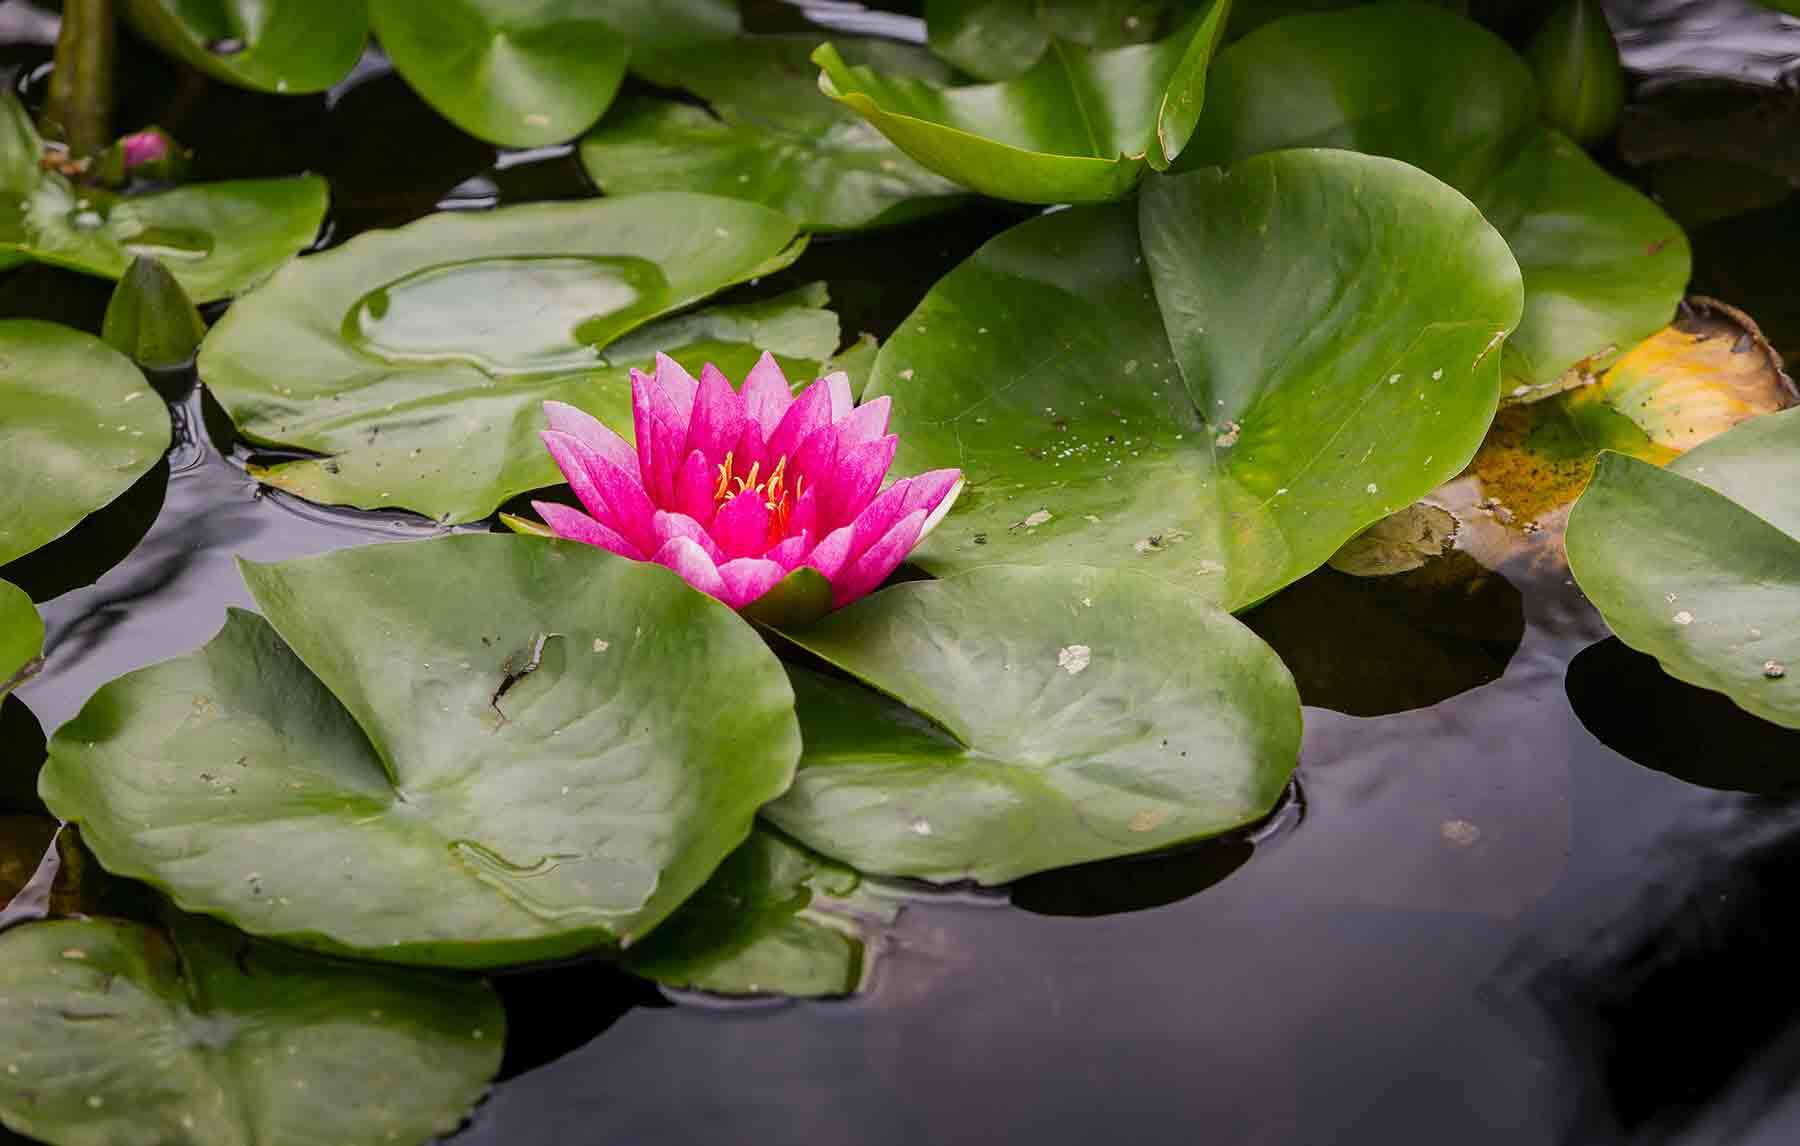 A bright pink lily flower blooming among green lilypads on a pool od dark water